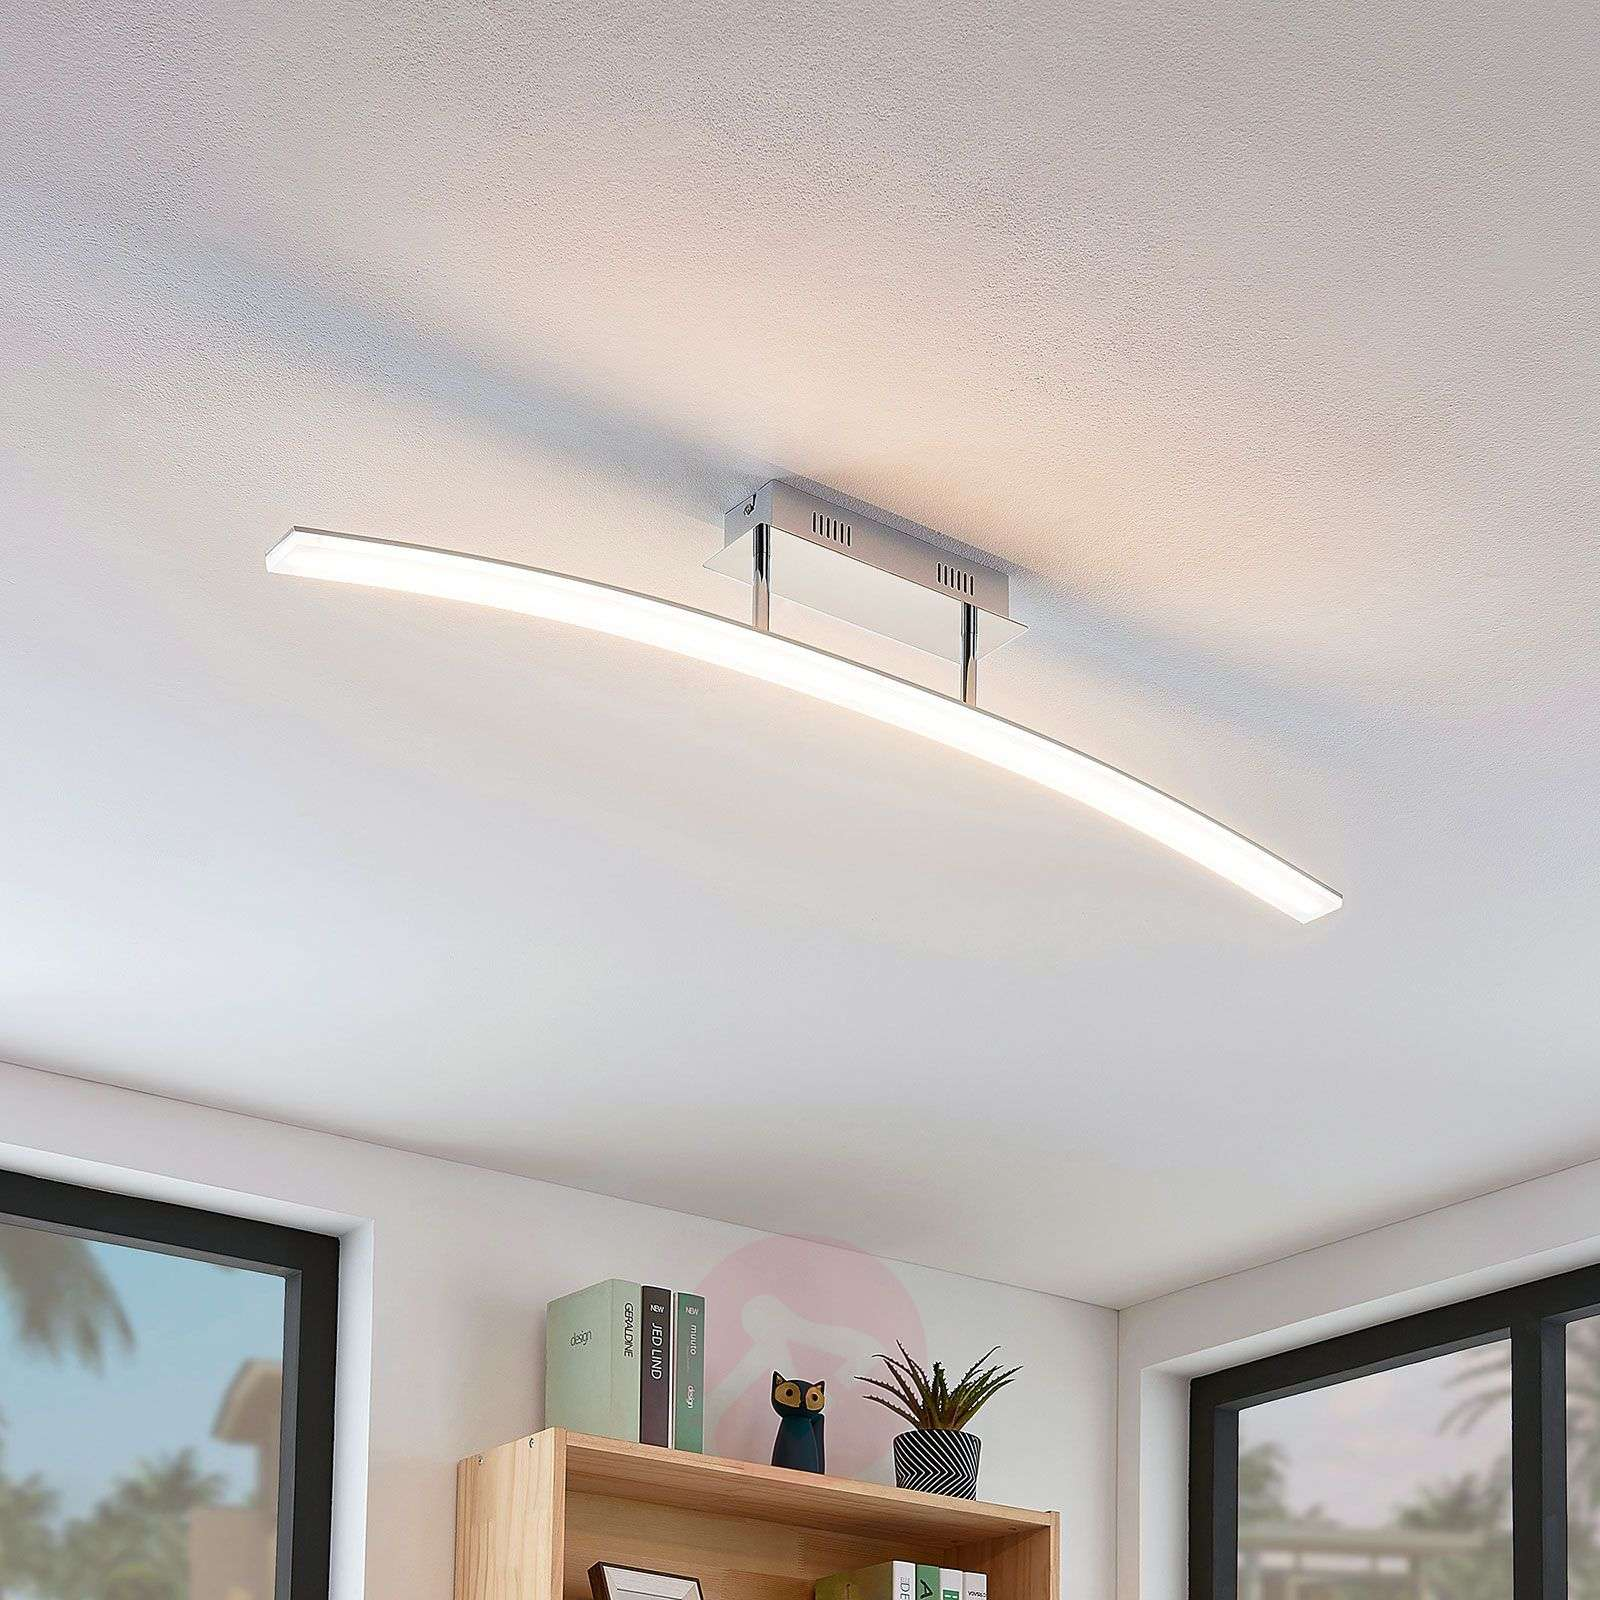 Led Ceiling Lights Company : Lorian led ceiling light curved lights